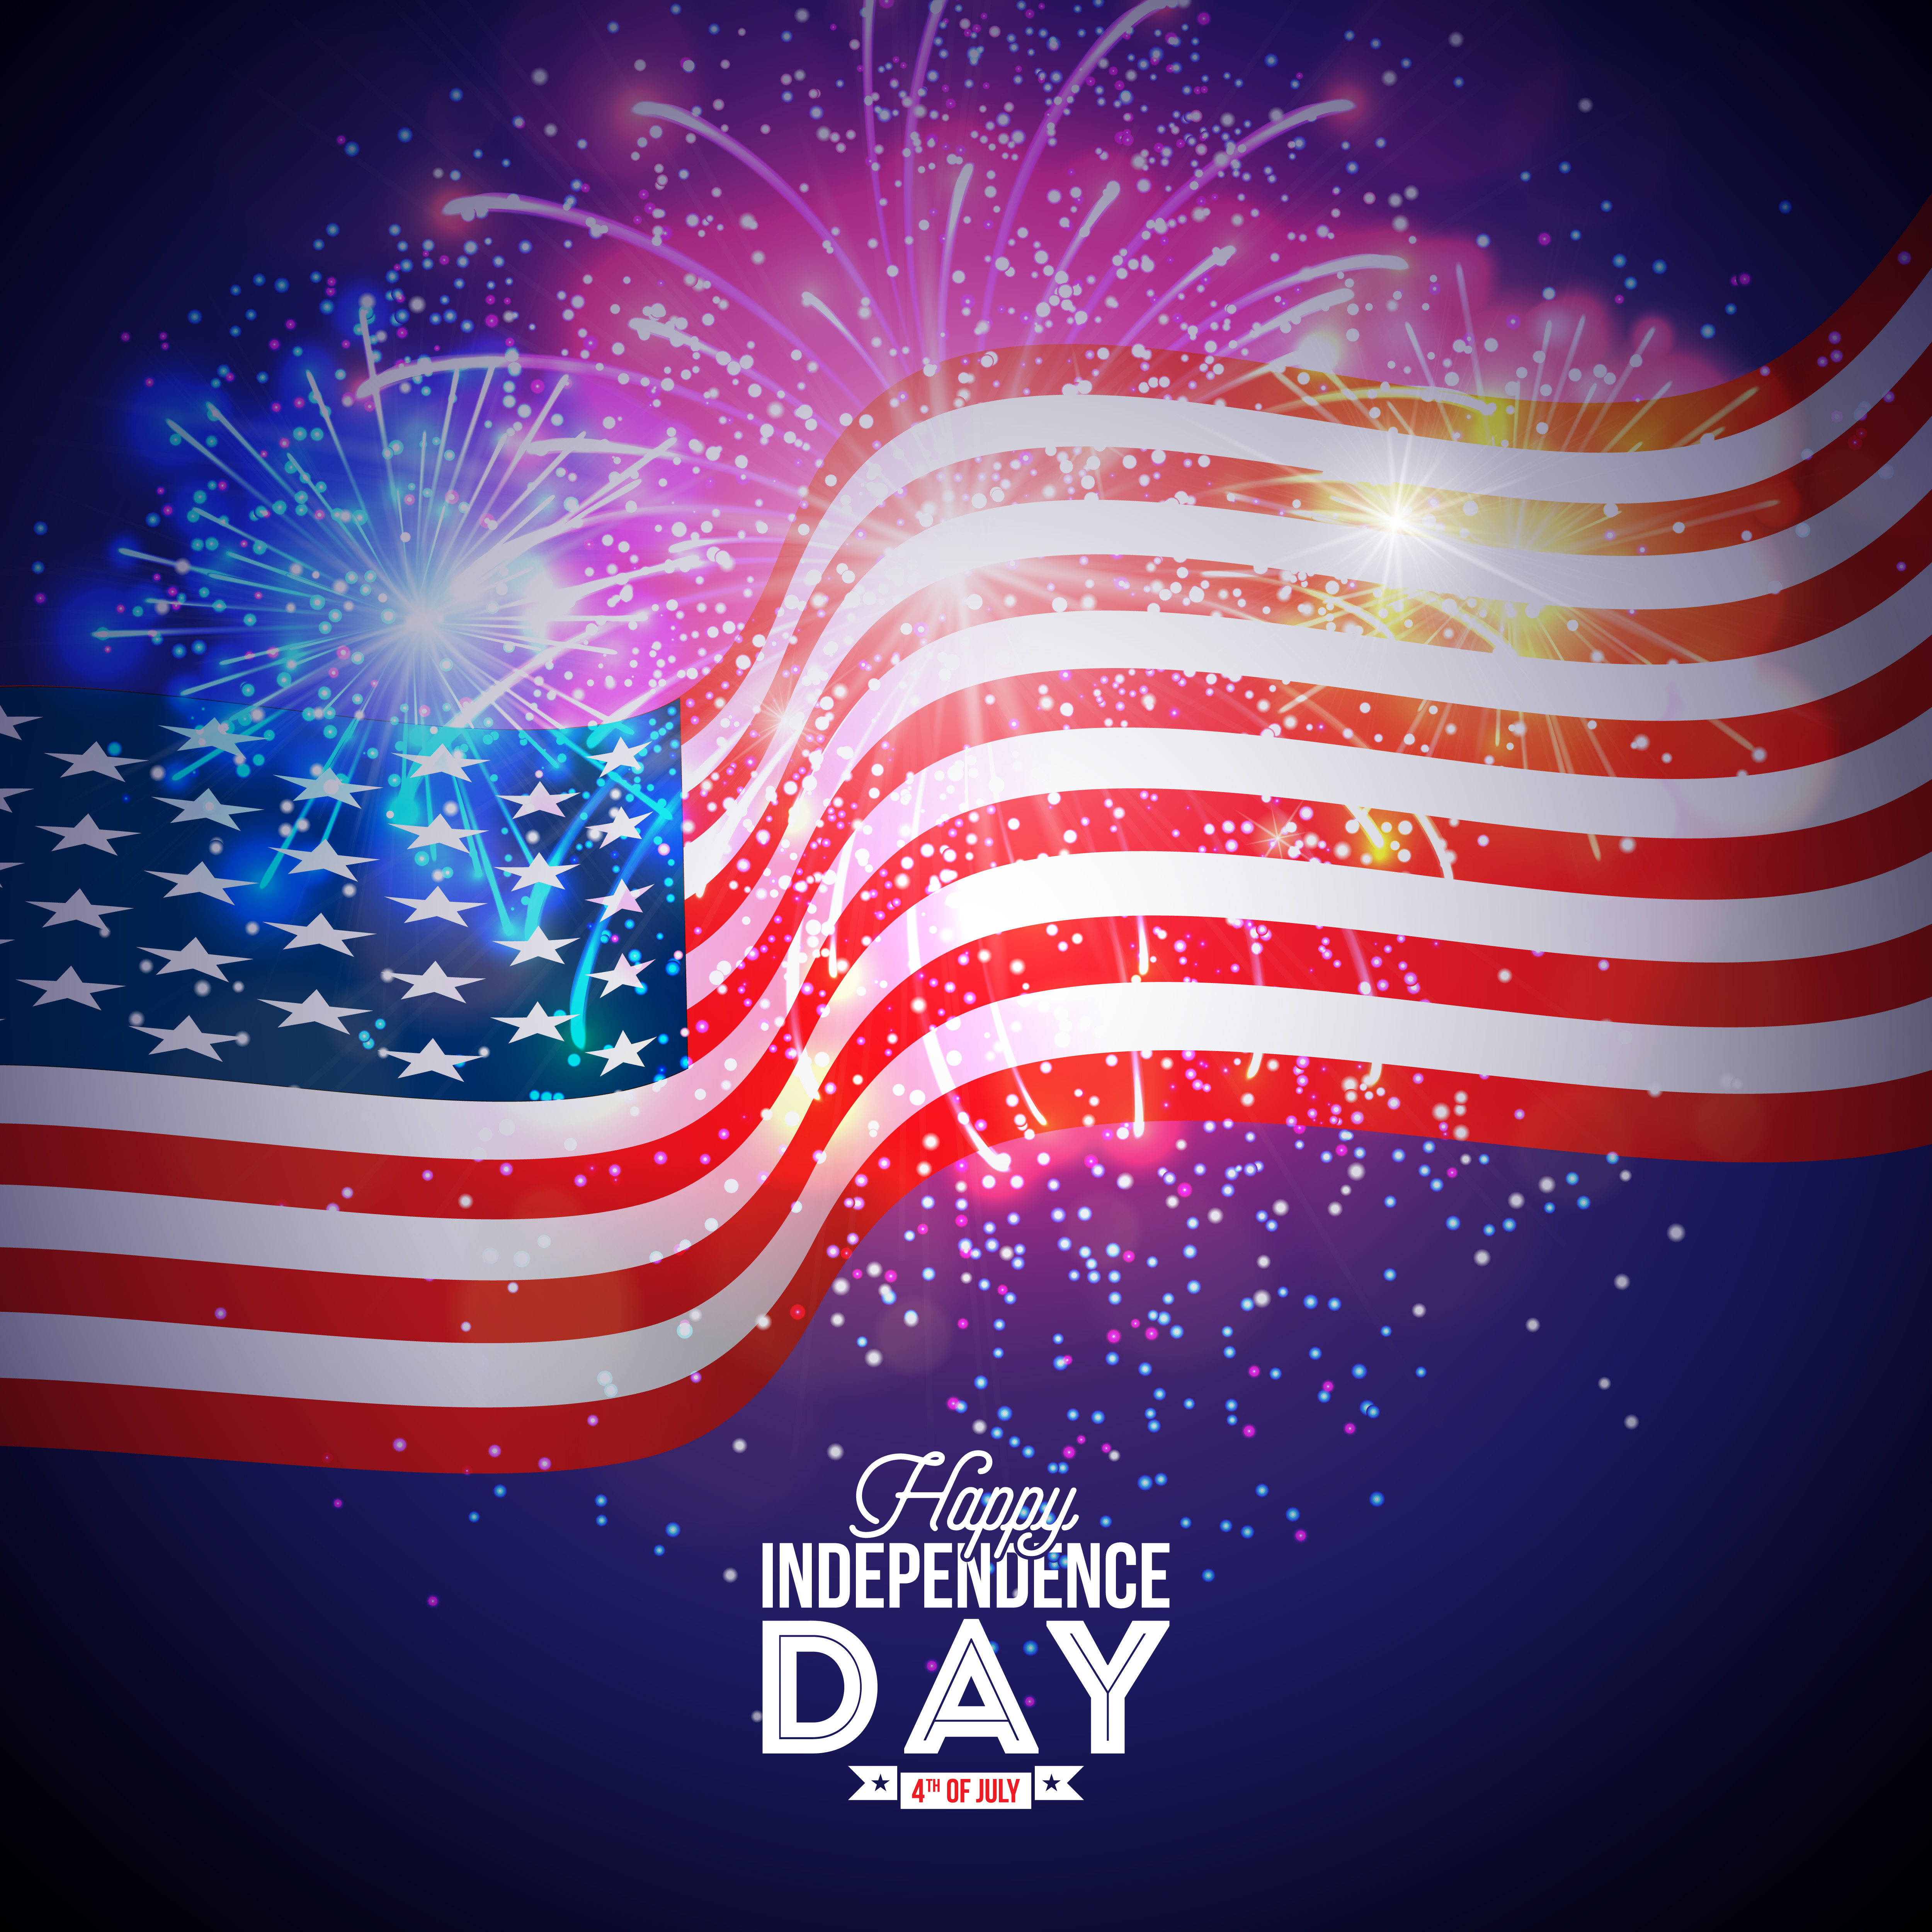 Independence Day: Happy Independence Day Of The USA Illustration